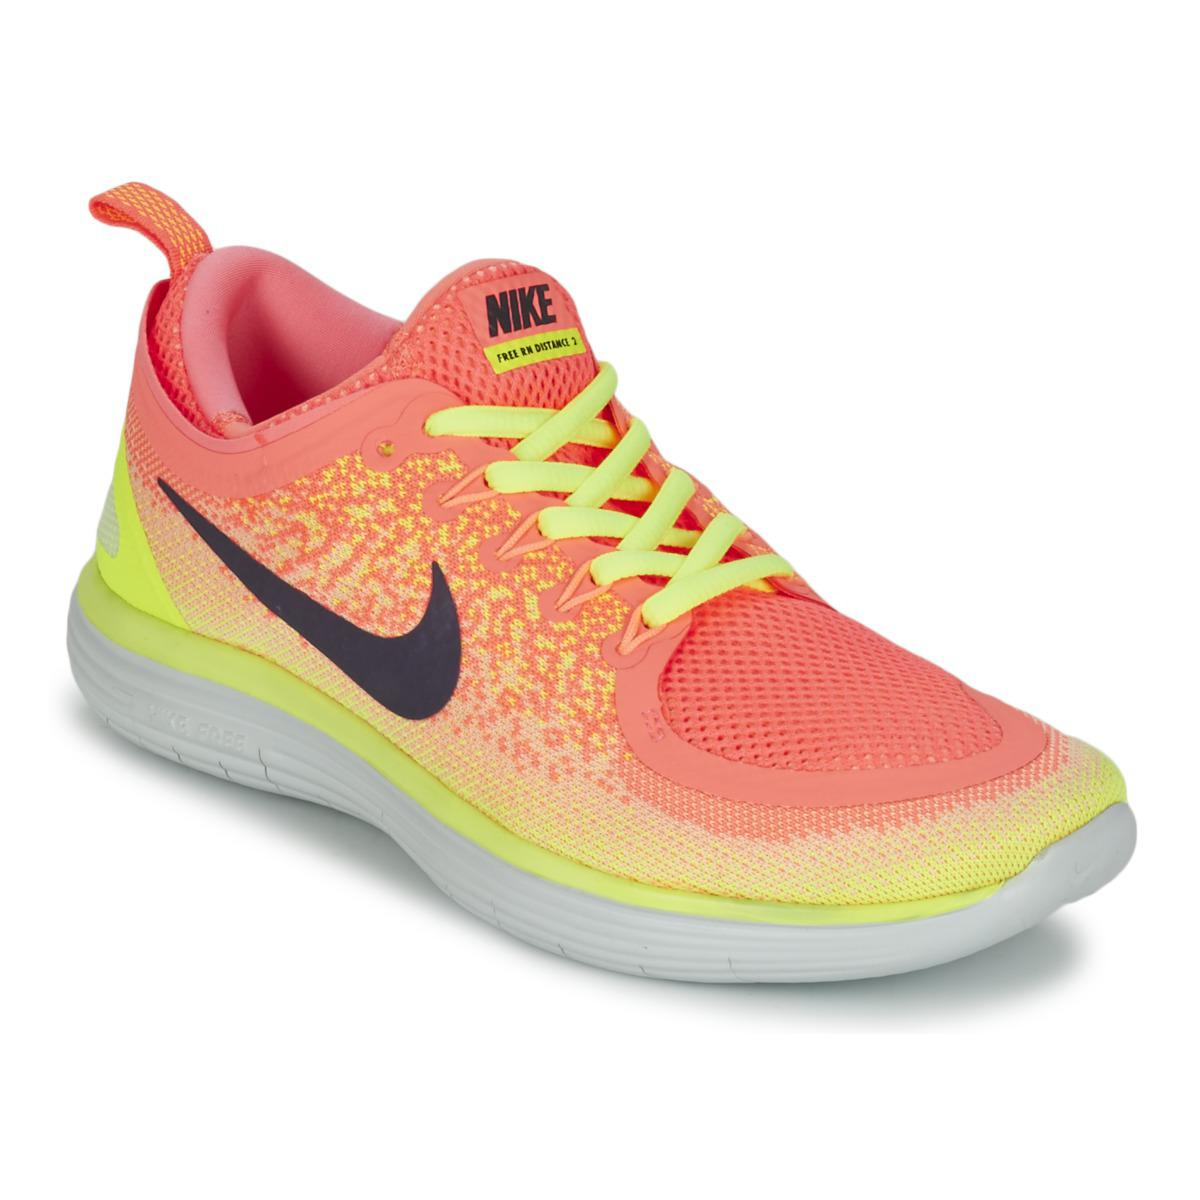 Nike Free Run Distance 2 Women's Running Trainers In Orange